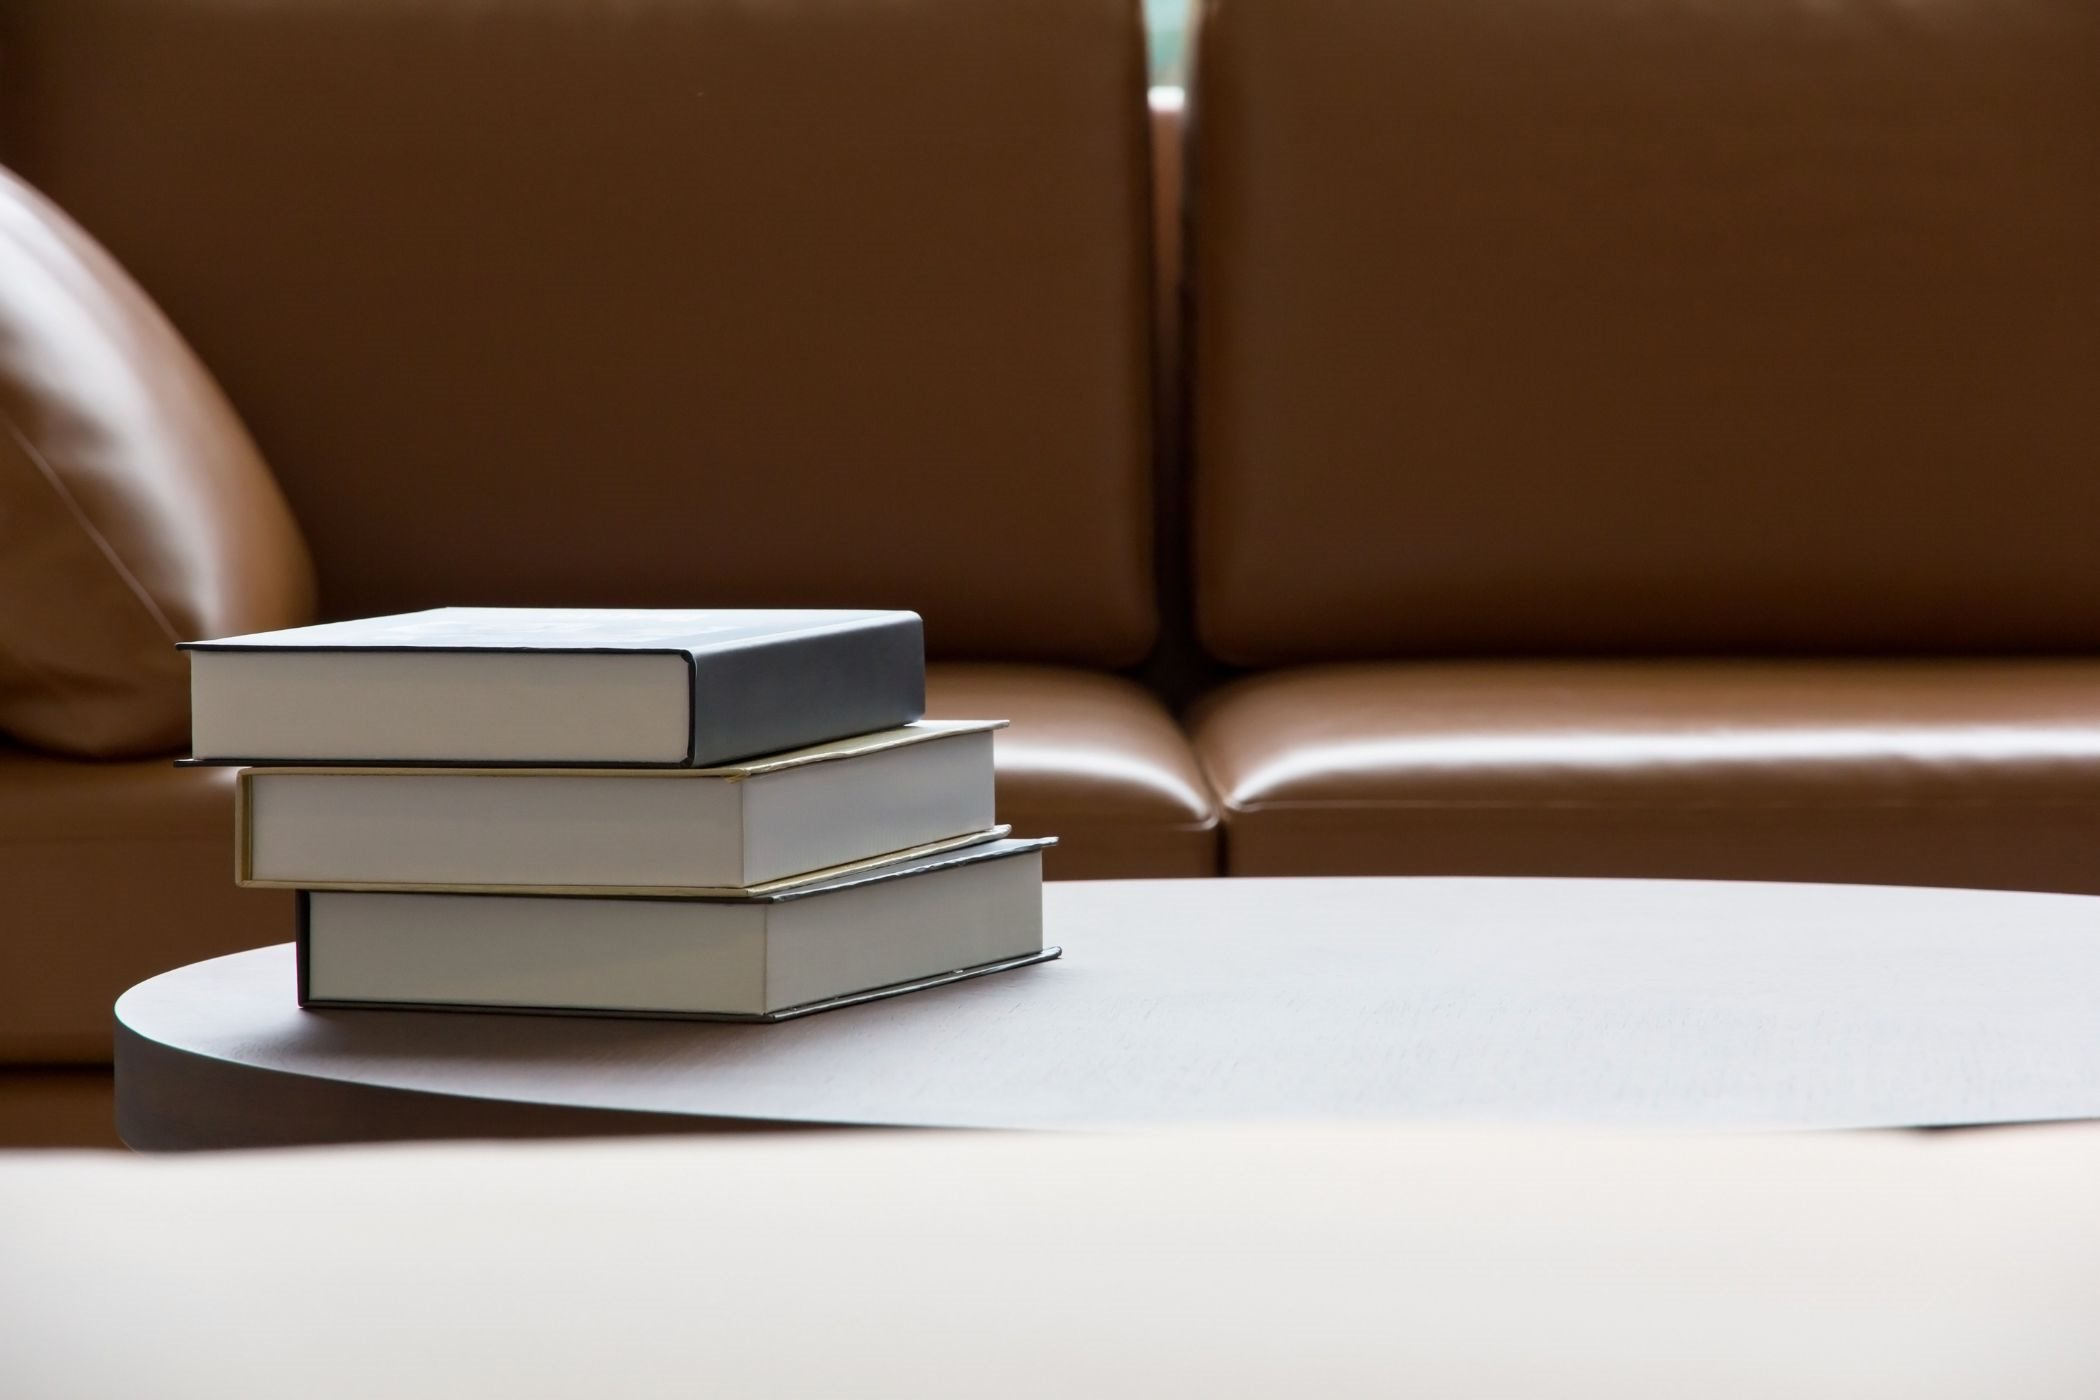 stock image of books on coffee table